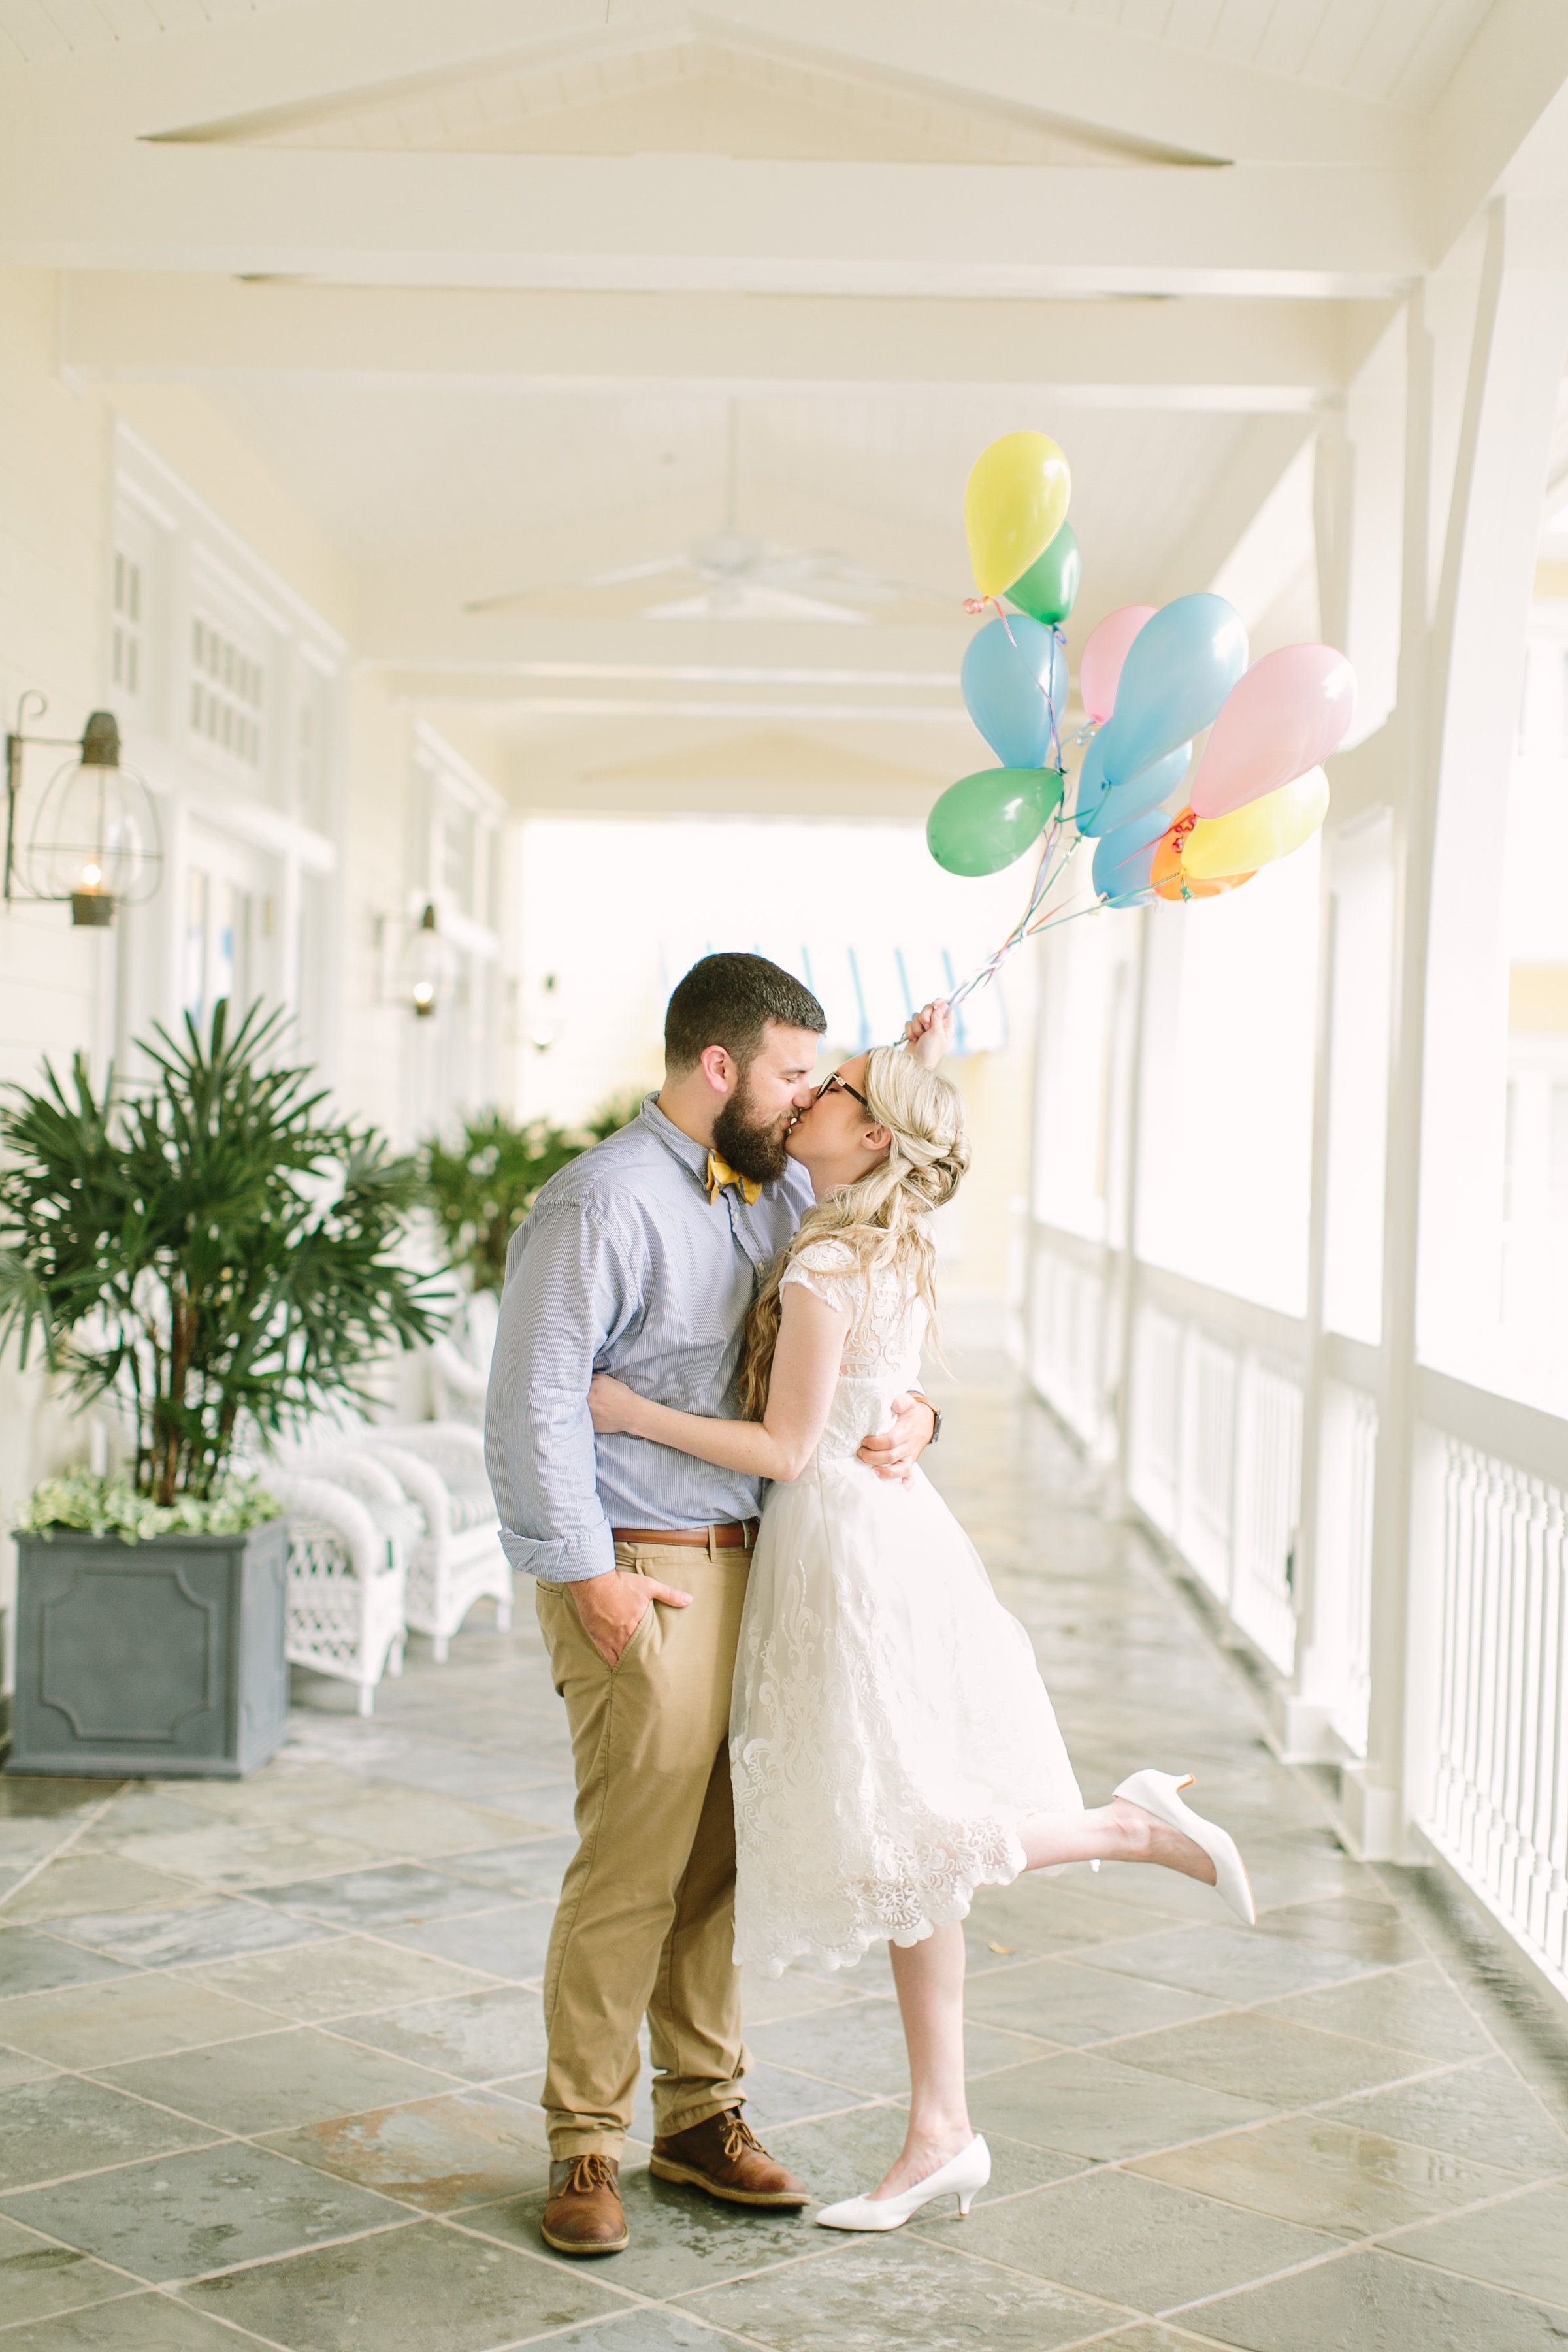 Rachelle and Dustin's sweet Up inspired wedding was beautiful!